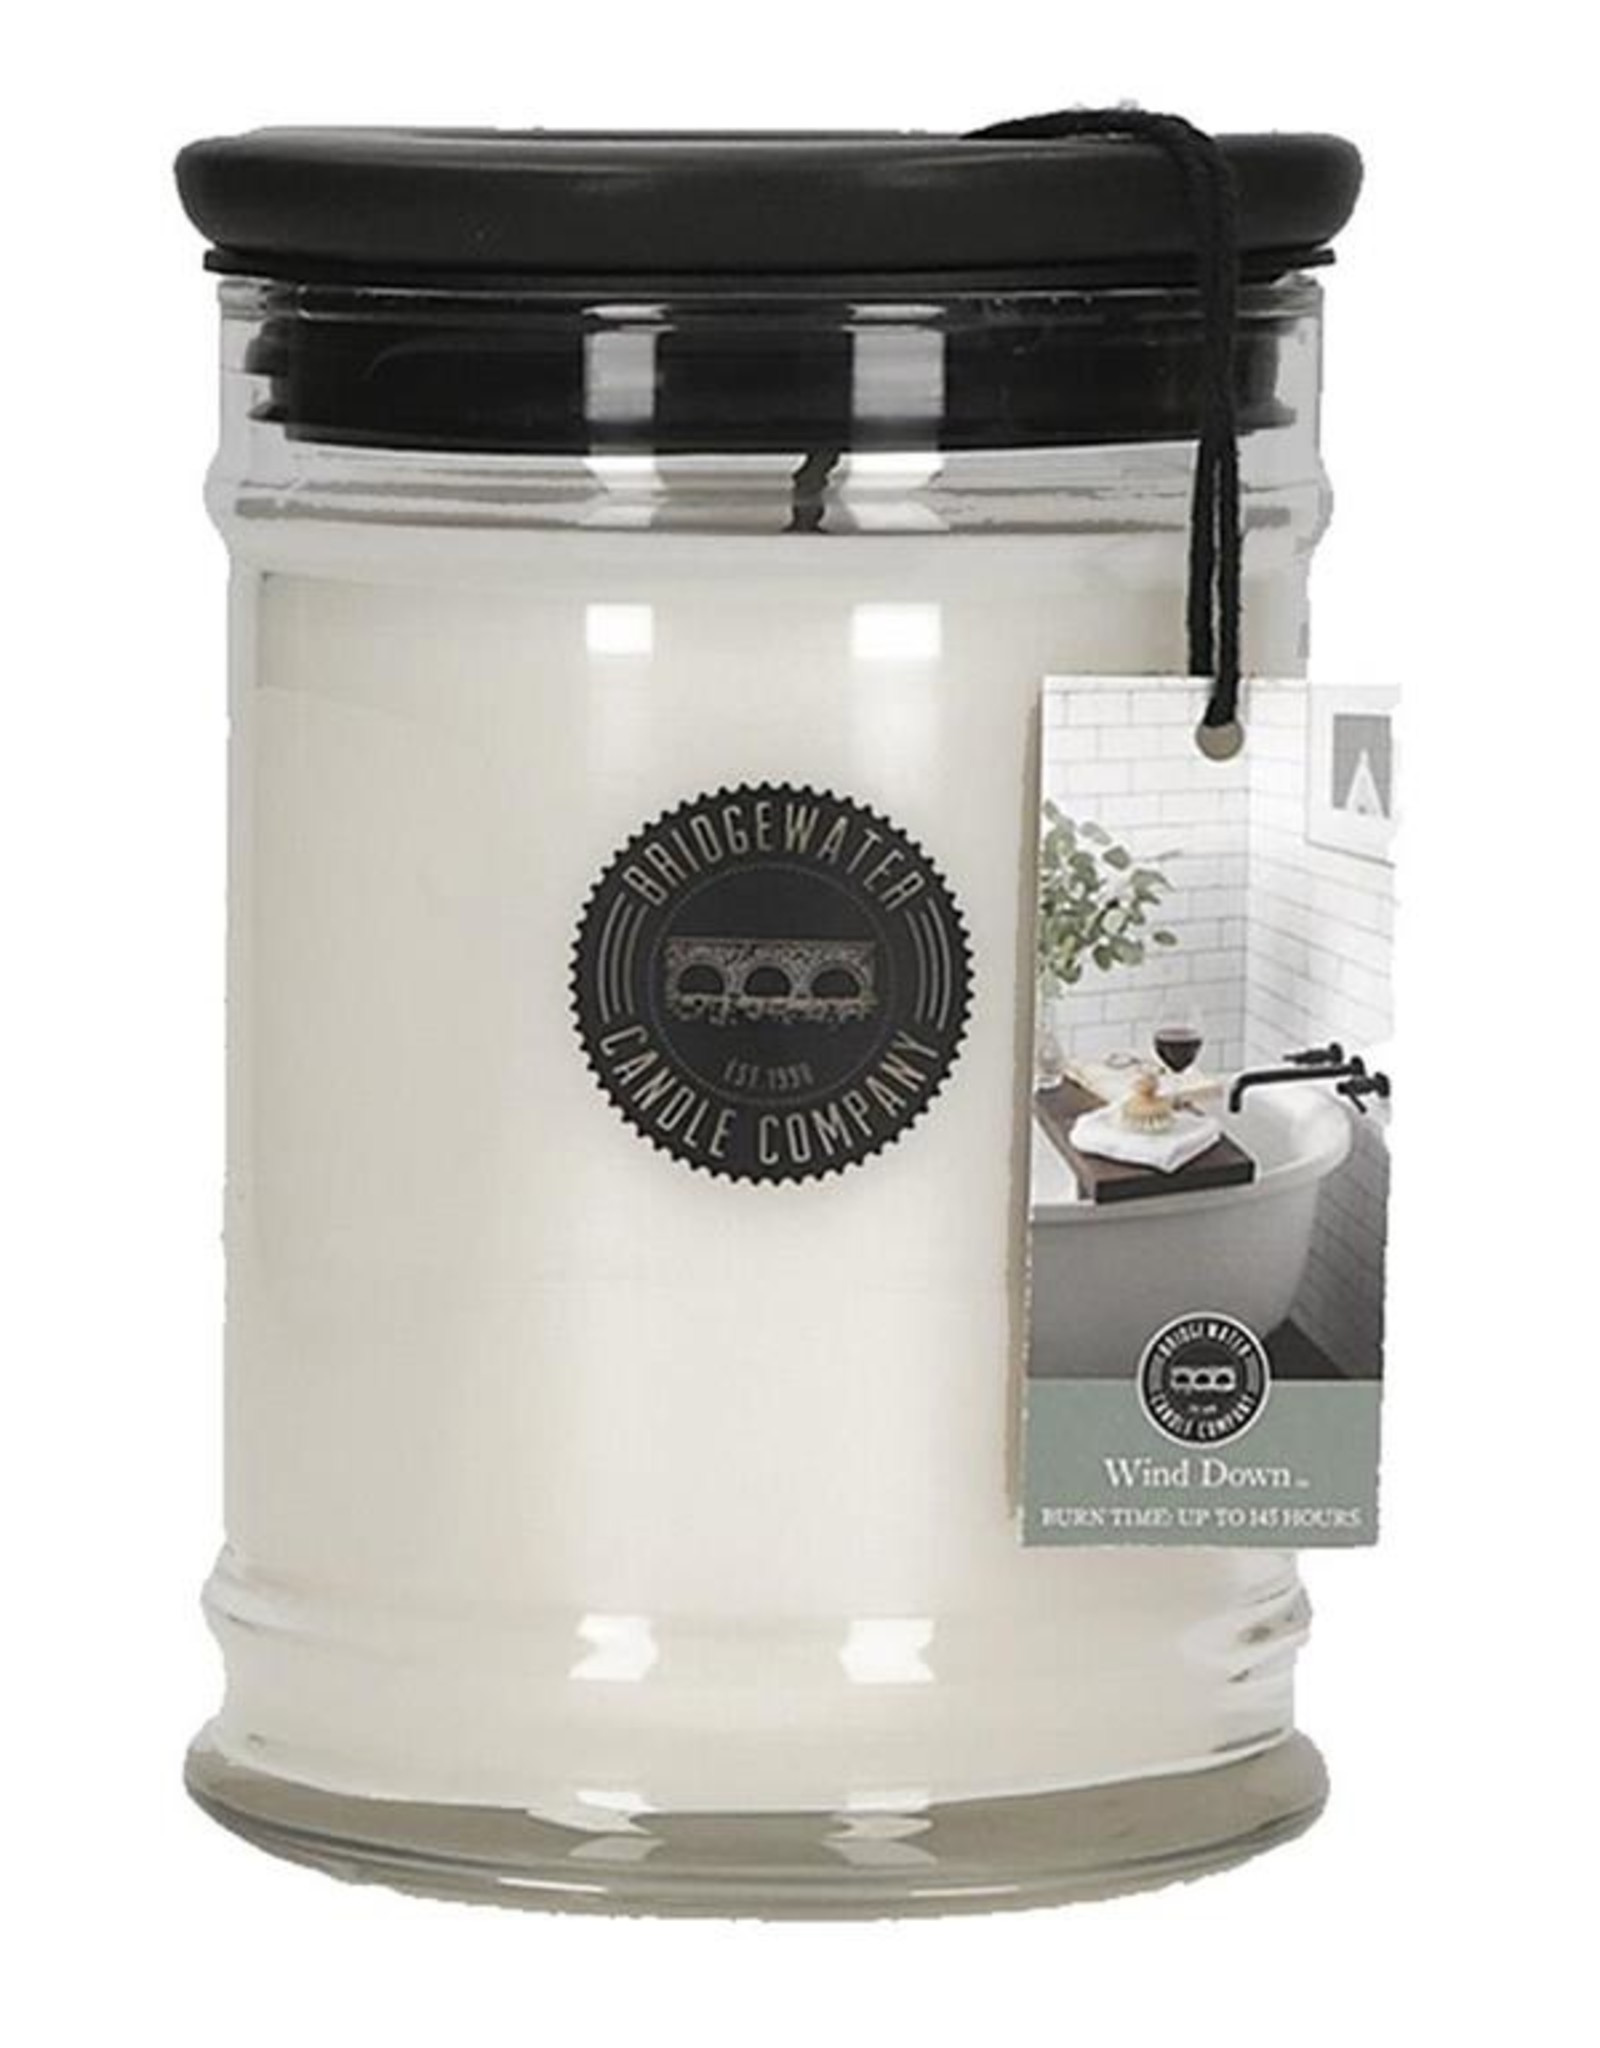 Bridgewater 8 oz. Wind Down Jar Candle